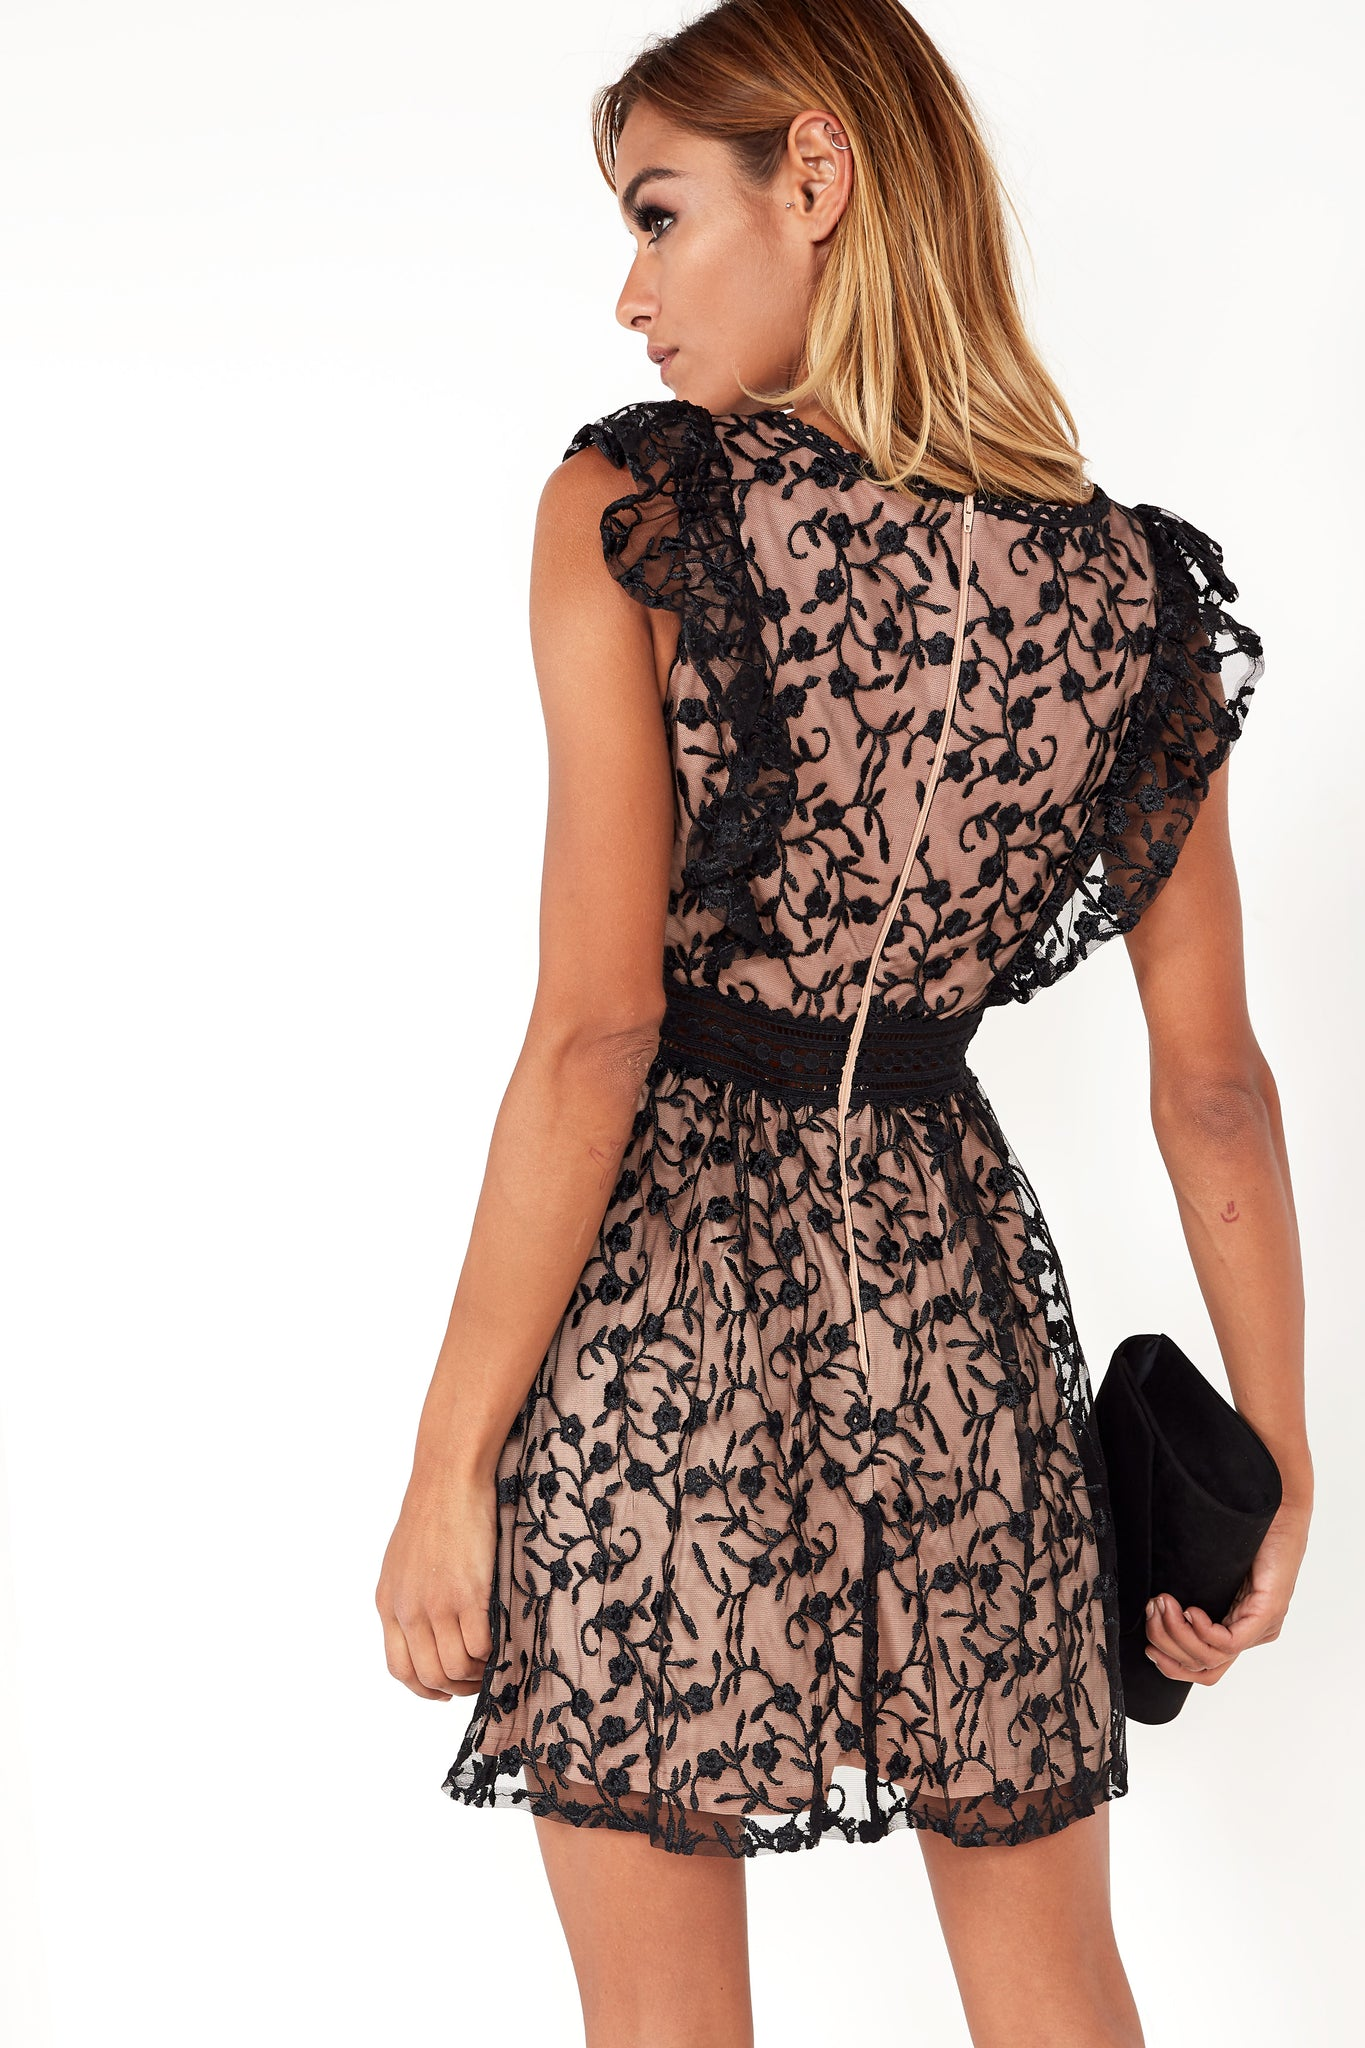 1a66528b6c64 ... Button Front Skater Dress. €35.00. Was €59.99. Previous